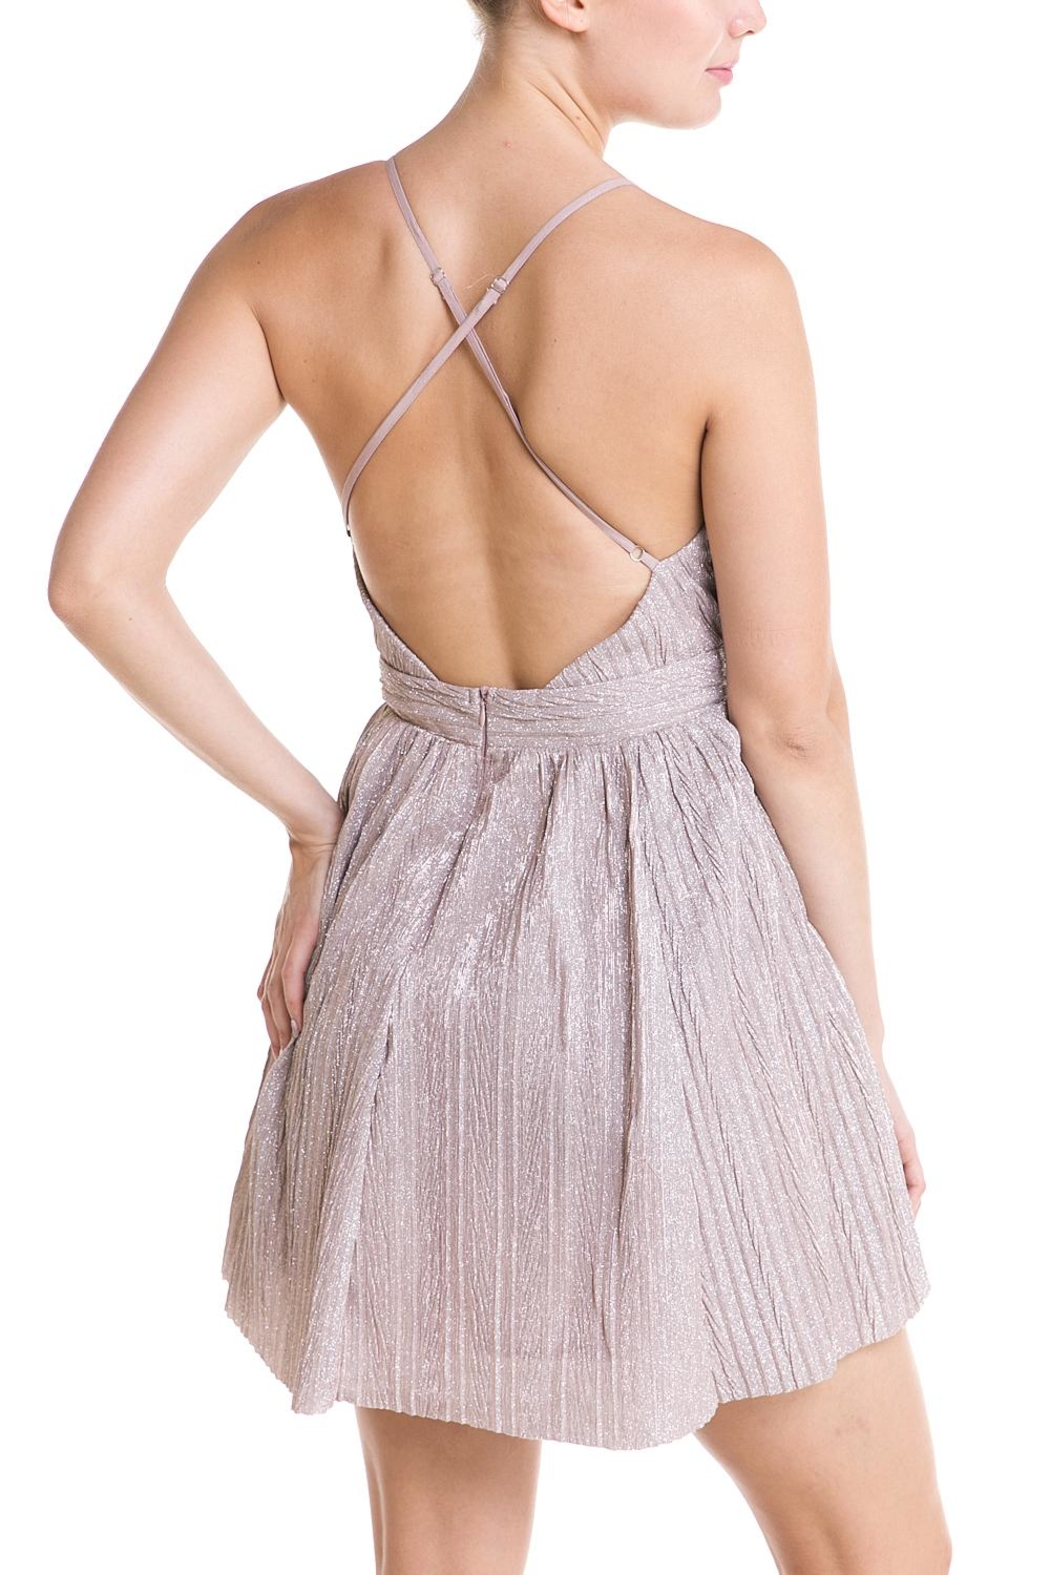 luxxel Plunging Neckline Dress - Side Cropped Image